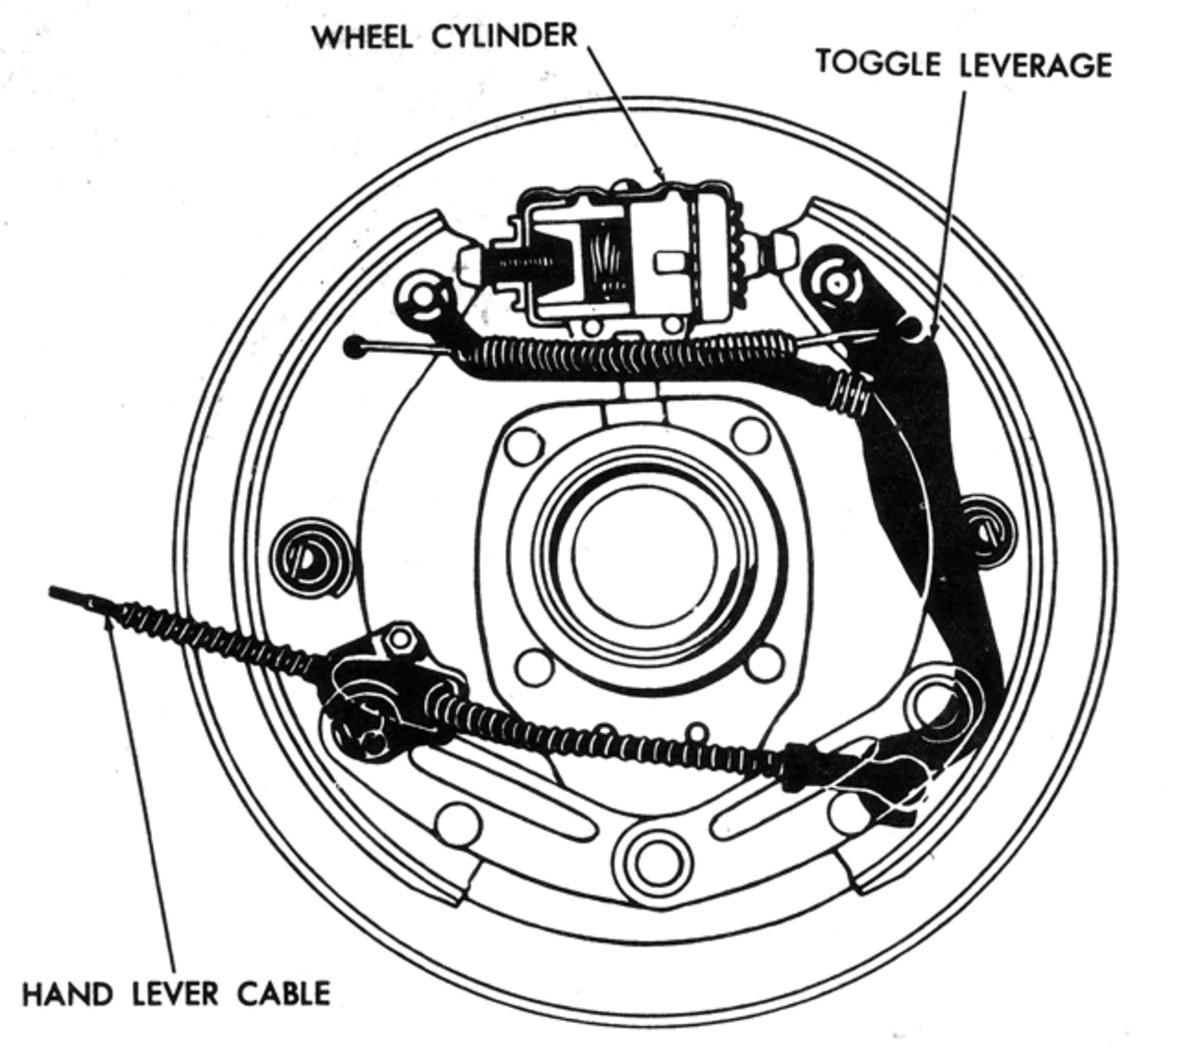 """Another common type of parking brake system is often called a """"U-brake,"""" because a single cable runs to both of the vehicle's rear wheels and is attached to a pull point so it forms a """"U."""" When a lever or handle is pulled in the driver's compartment, the cable mechanically applies the brake shoes or pads at both rear wheels. This system is used on many CJ civilian jeeps, automobiles, light trucks, and CUCVs. Most later-model HMMWVs use a similar system that mechanically applies the rear wheel disk brakes."""